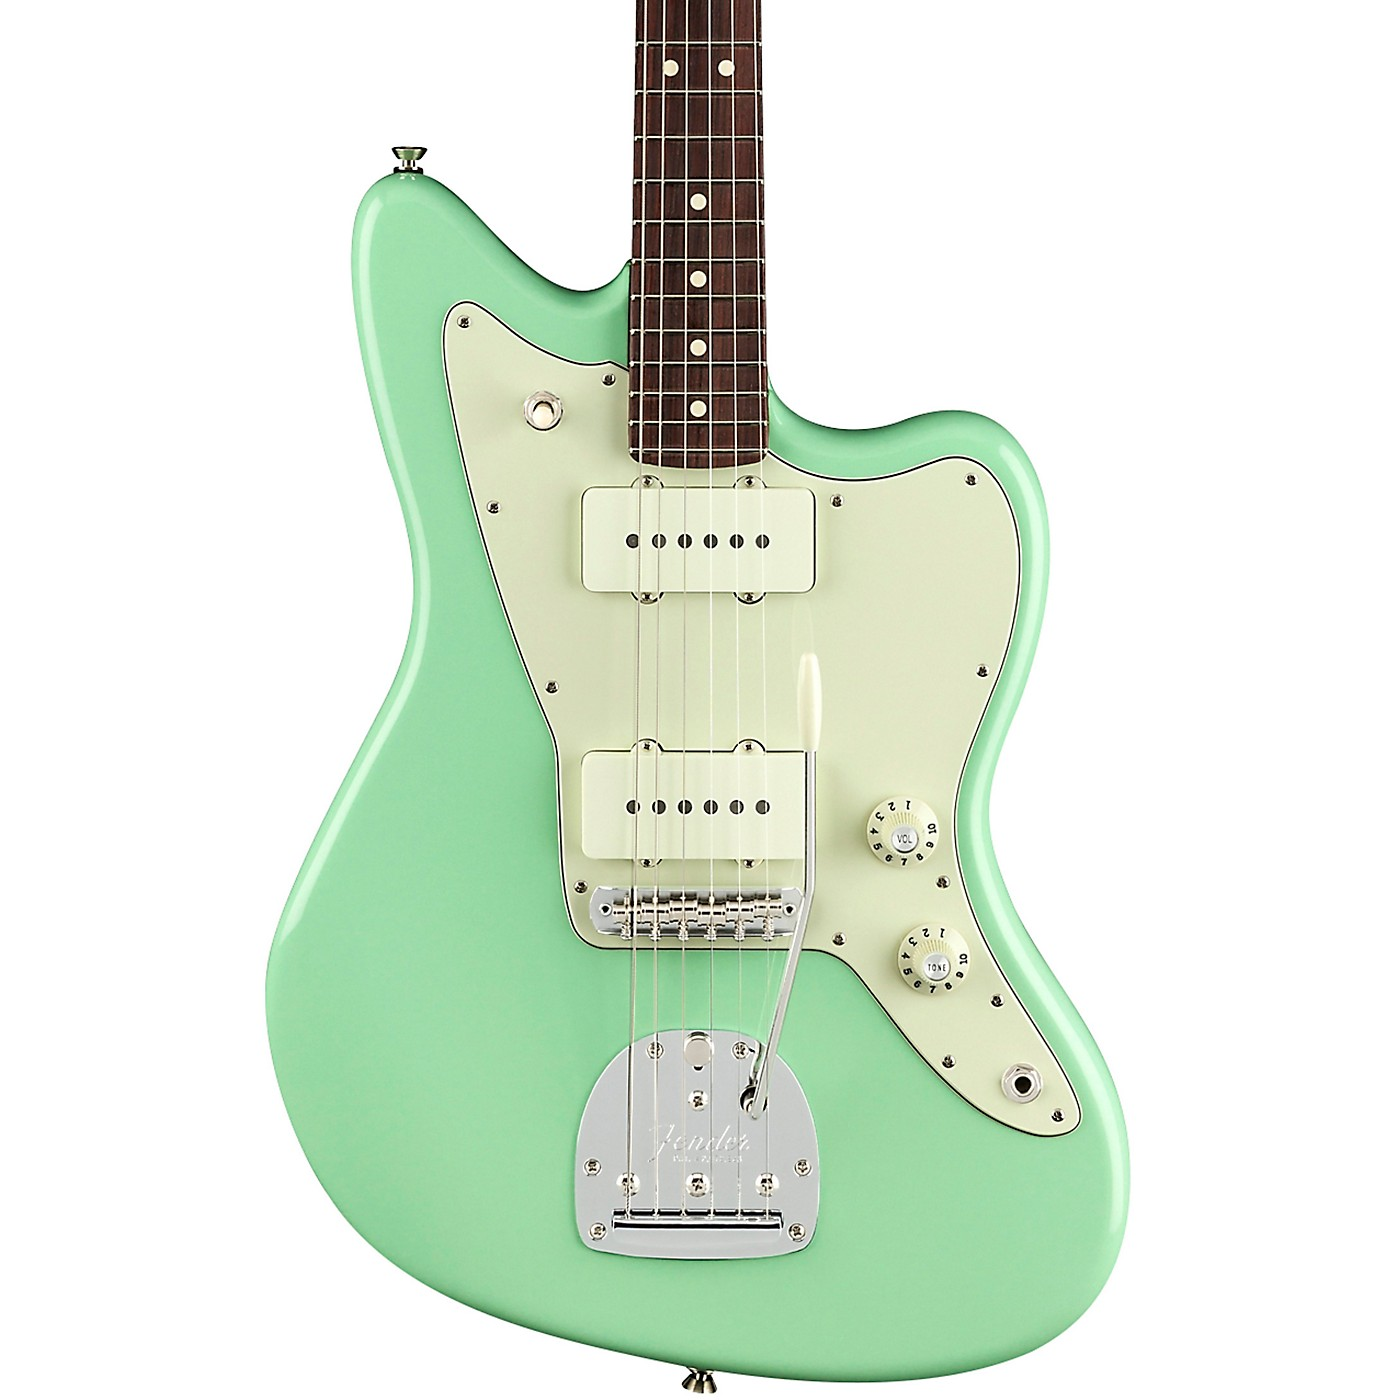 Fender American Professional Jazzmaster Rosewood Neck Limited Edition Electric Guitar thumbnail